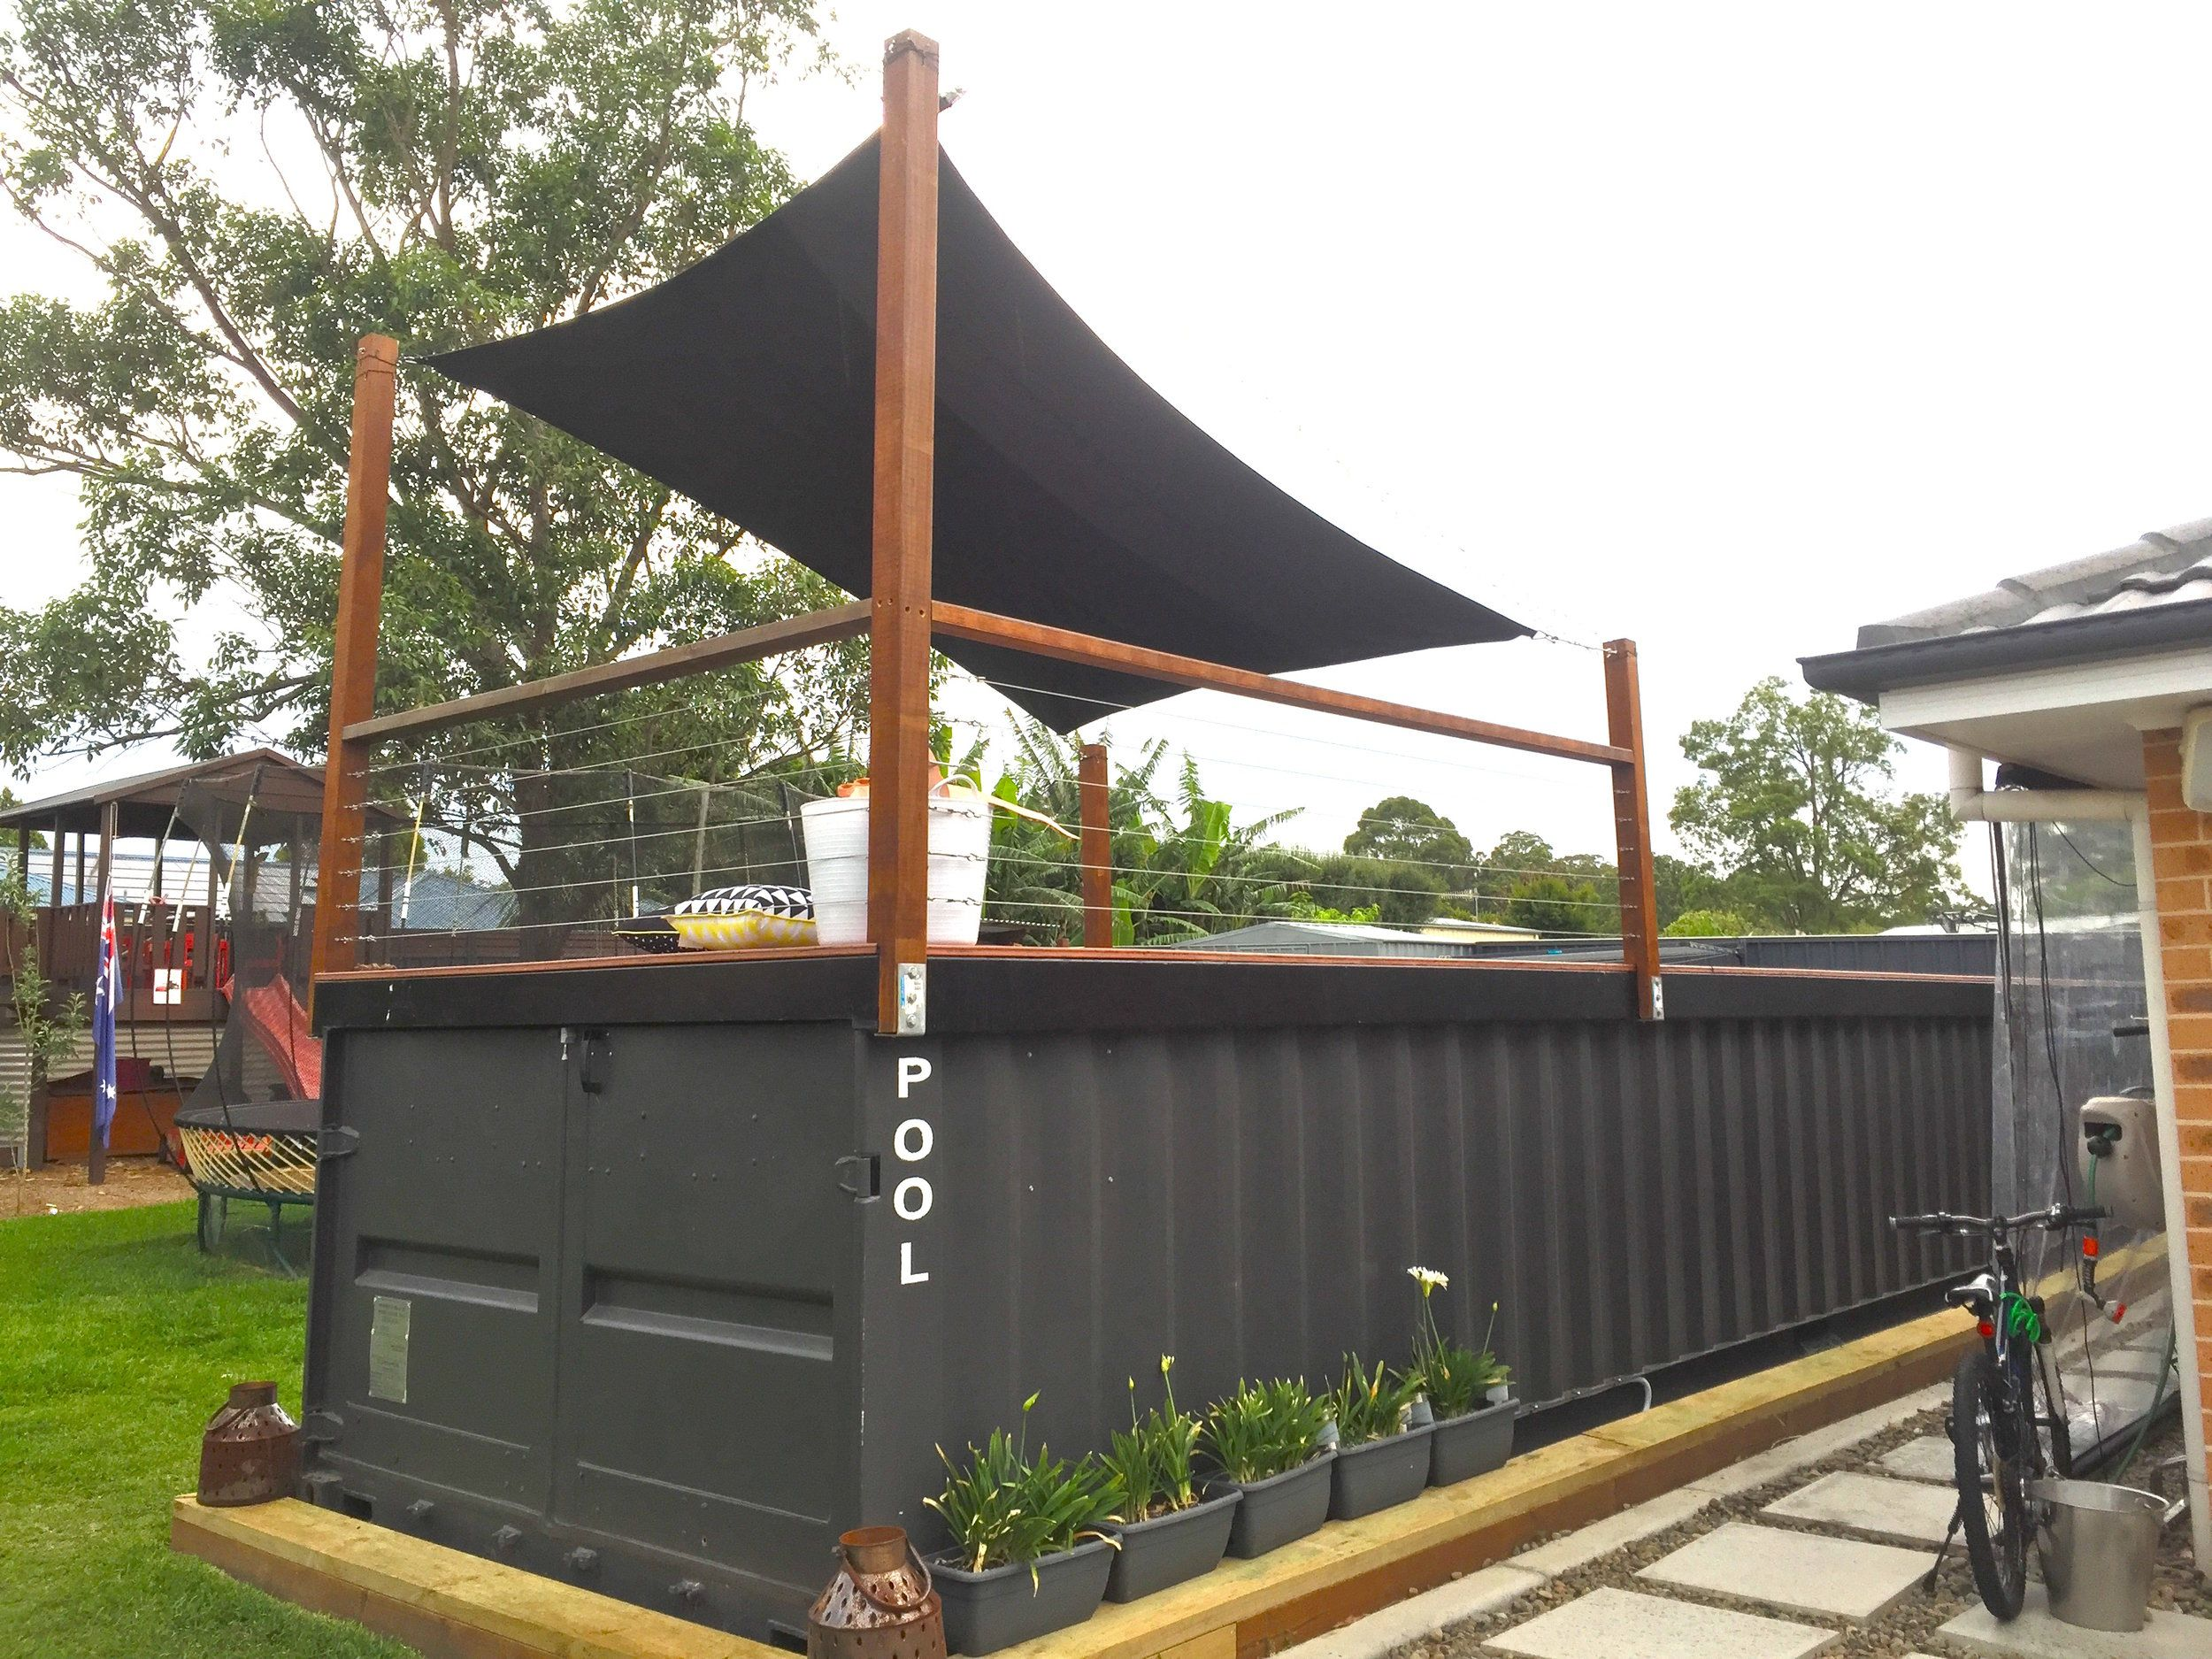 Fencing Inspiration For Our Shipping Container Pool Shipping Container Pool Container Pool Shipping Container Swimming Pool